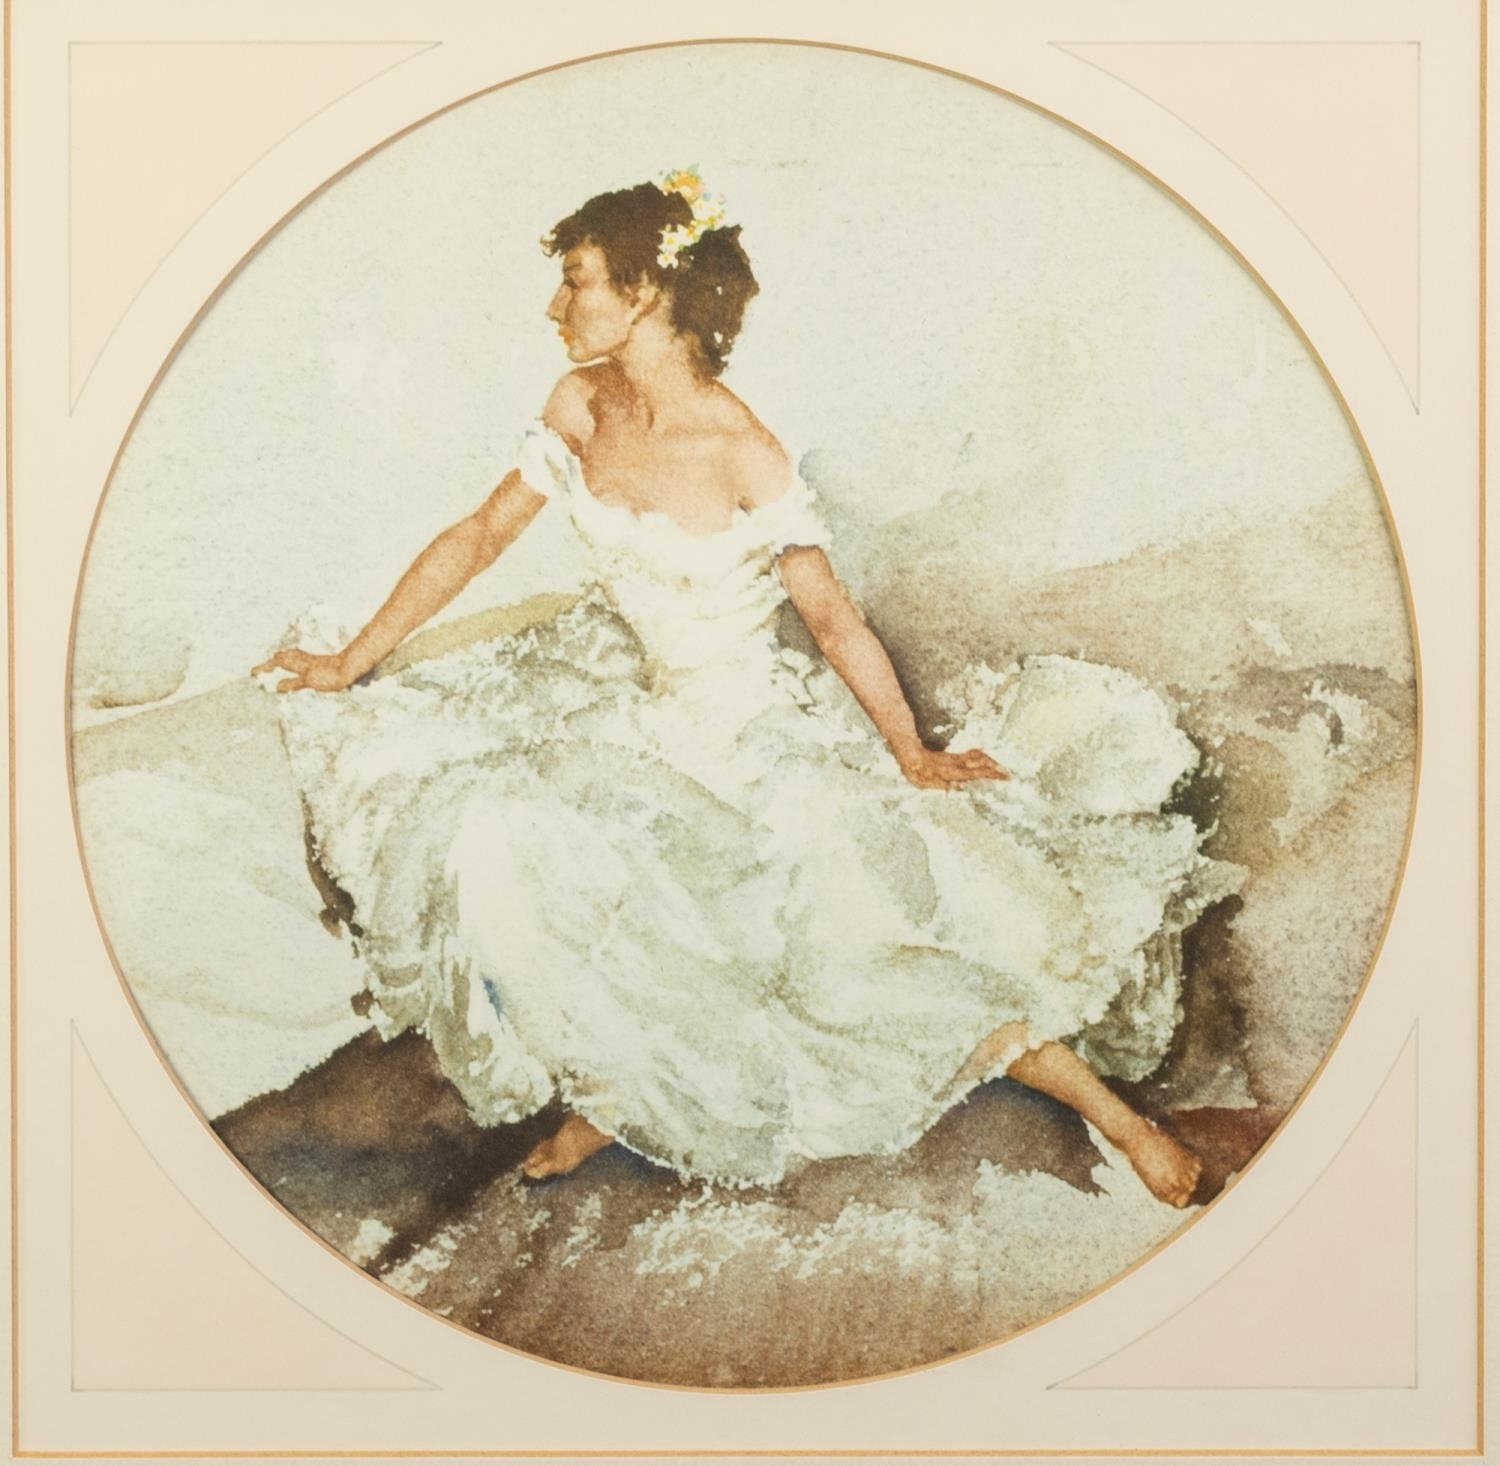 W. RUSSELL FLINT ARTIST SIGNED COLOUR PRINT Semi-clad female figure at a washing well Guild blind - Image 3 of 6